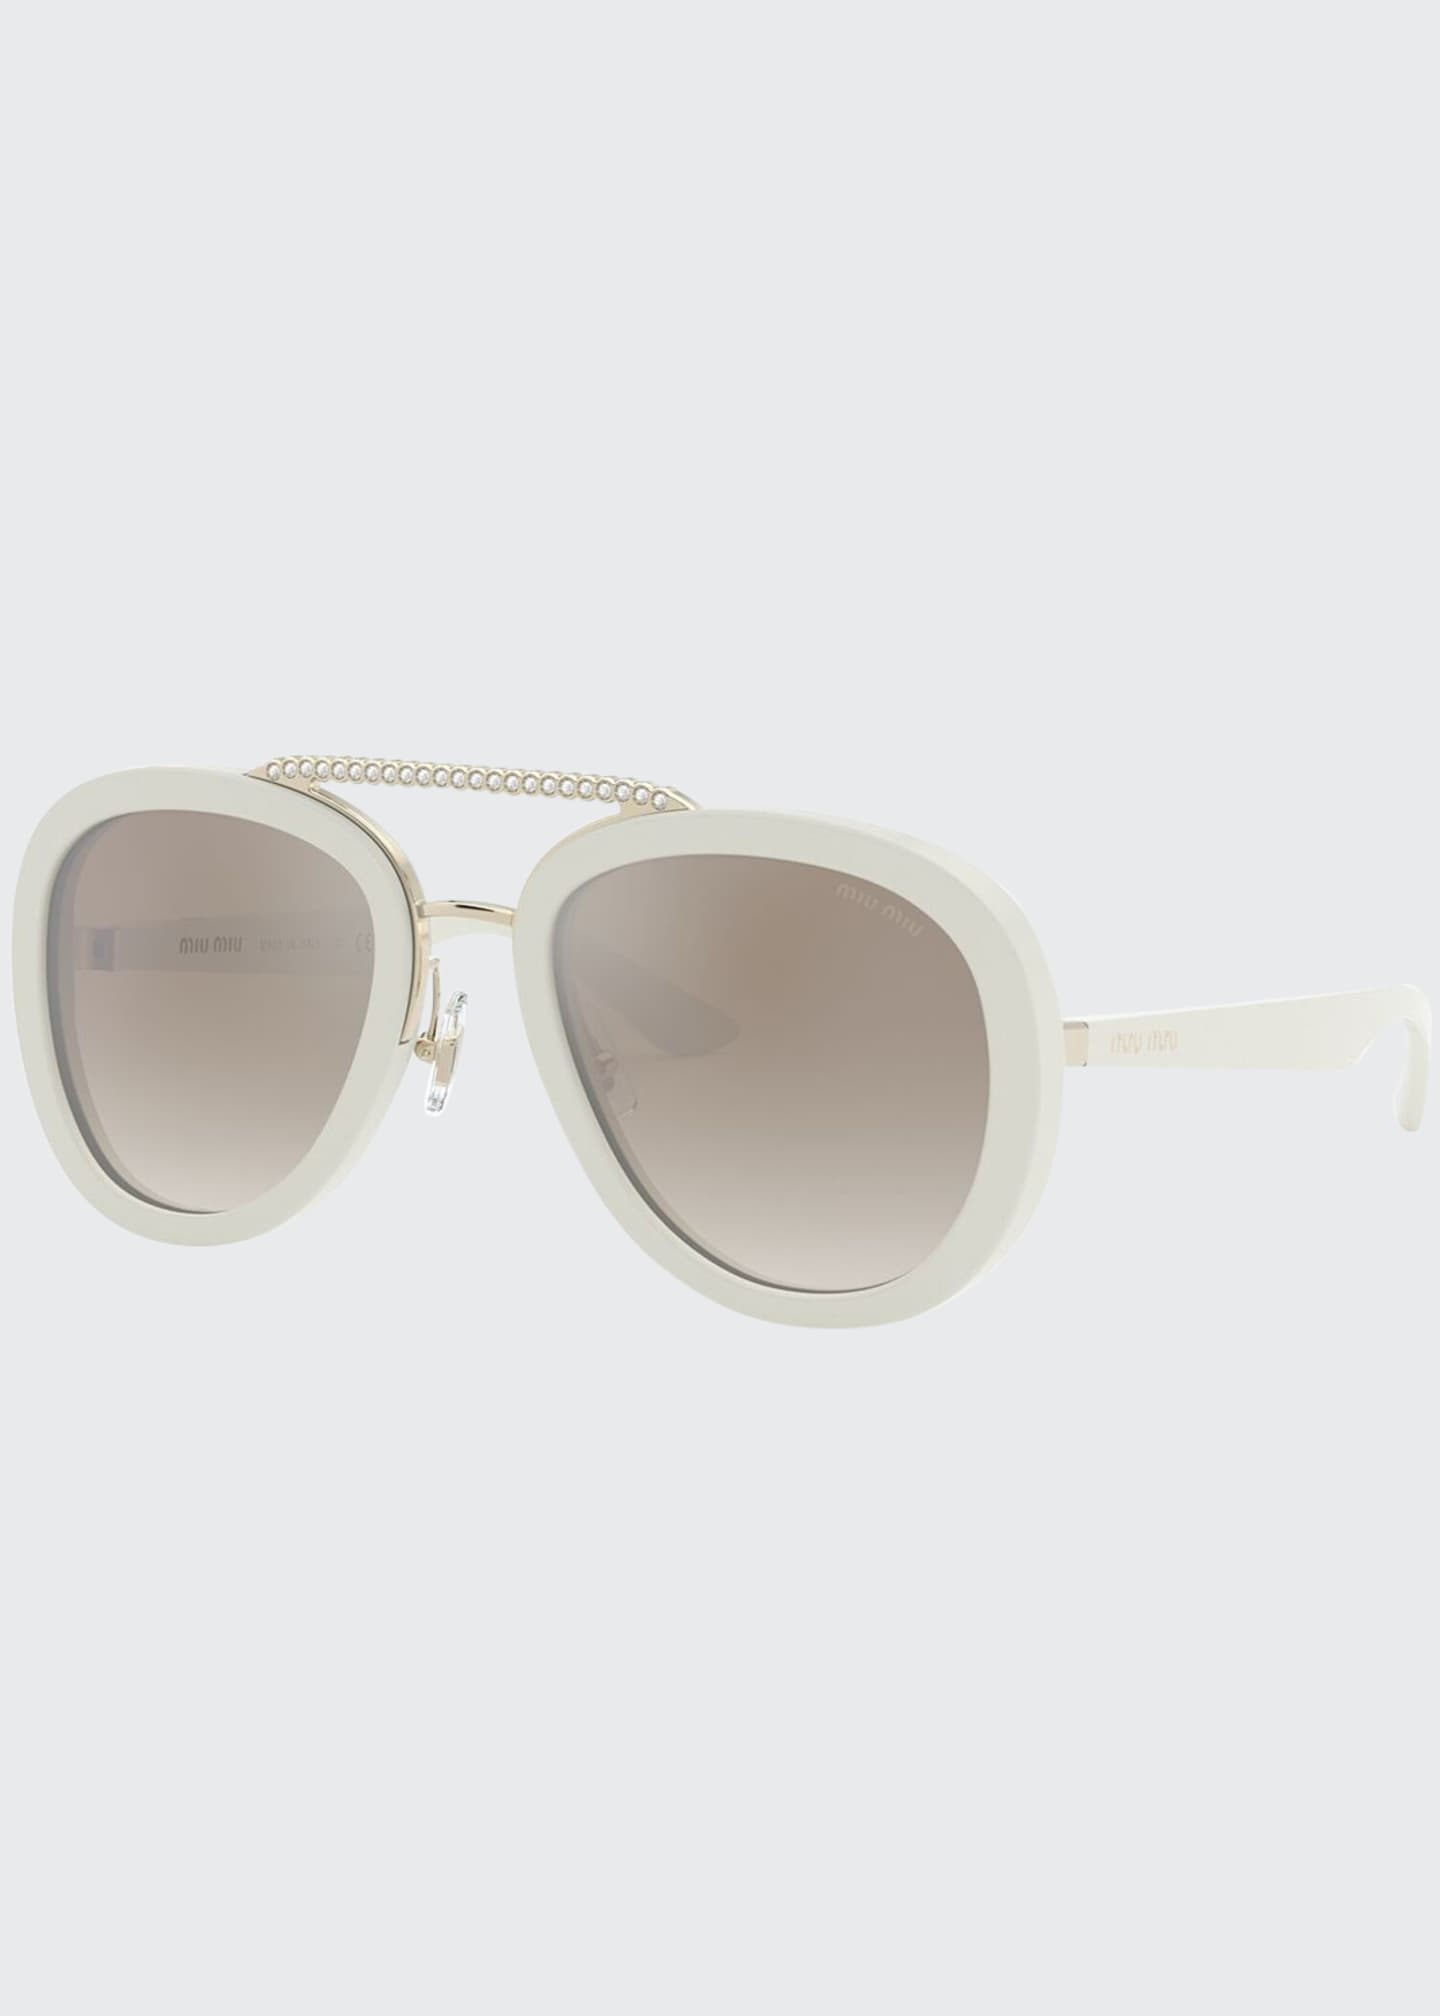 Miu Miu Mirror Acetate Aviator Sunglasses